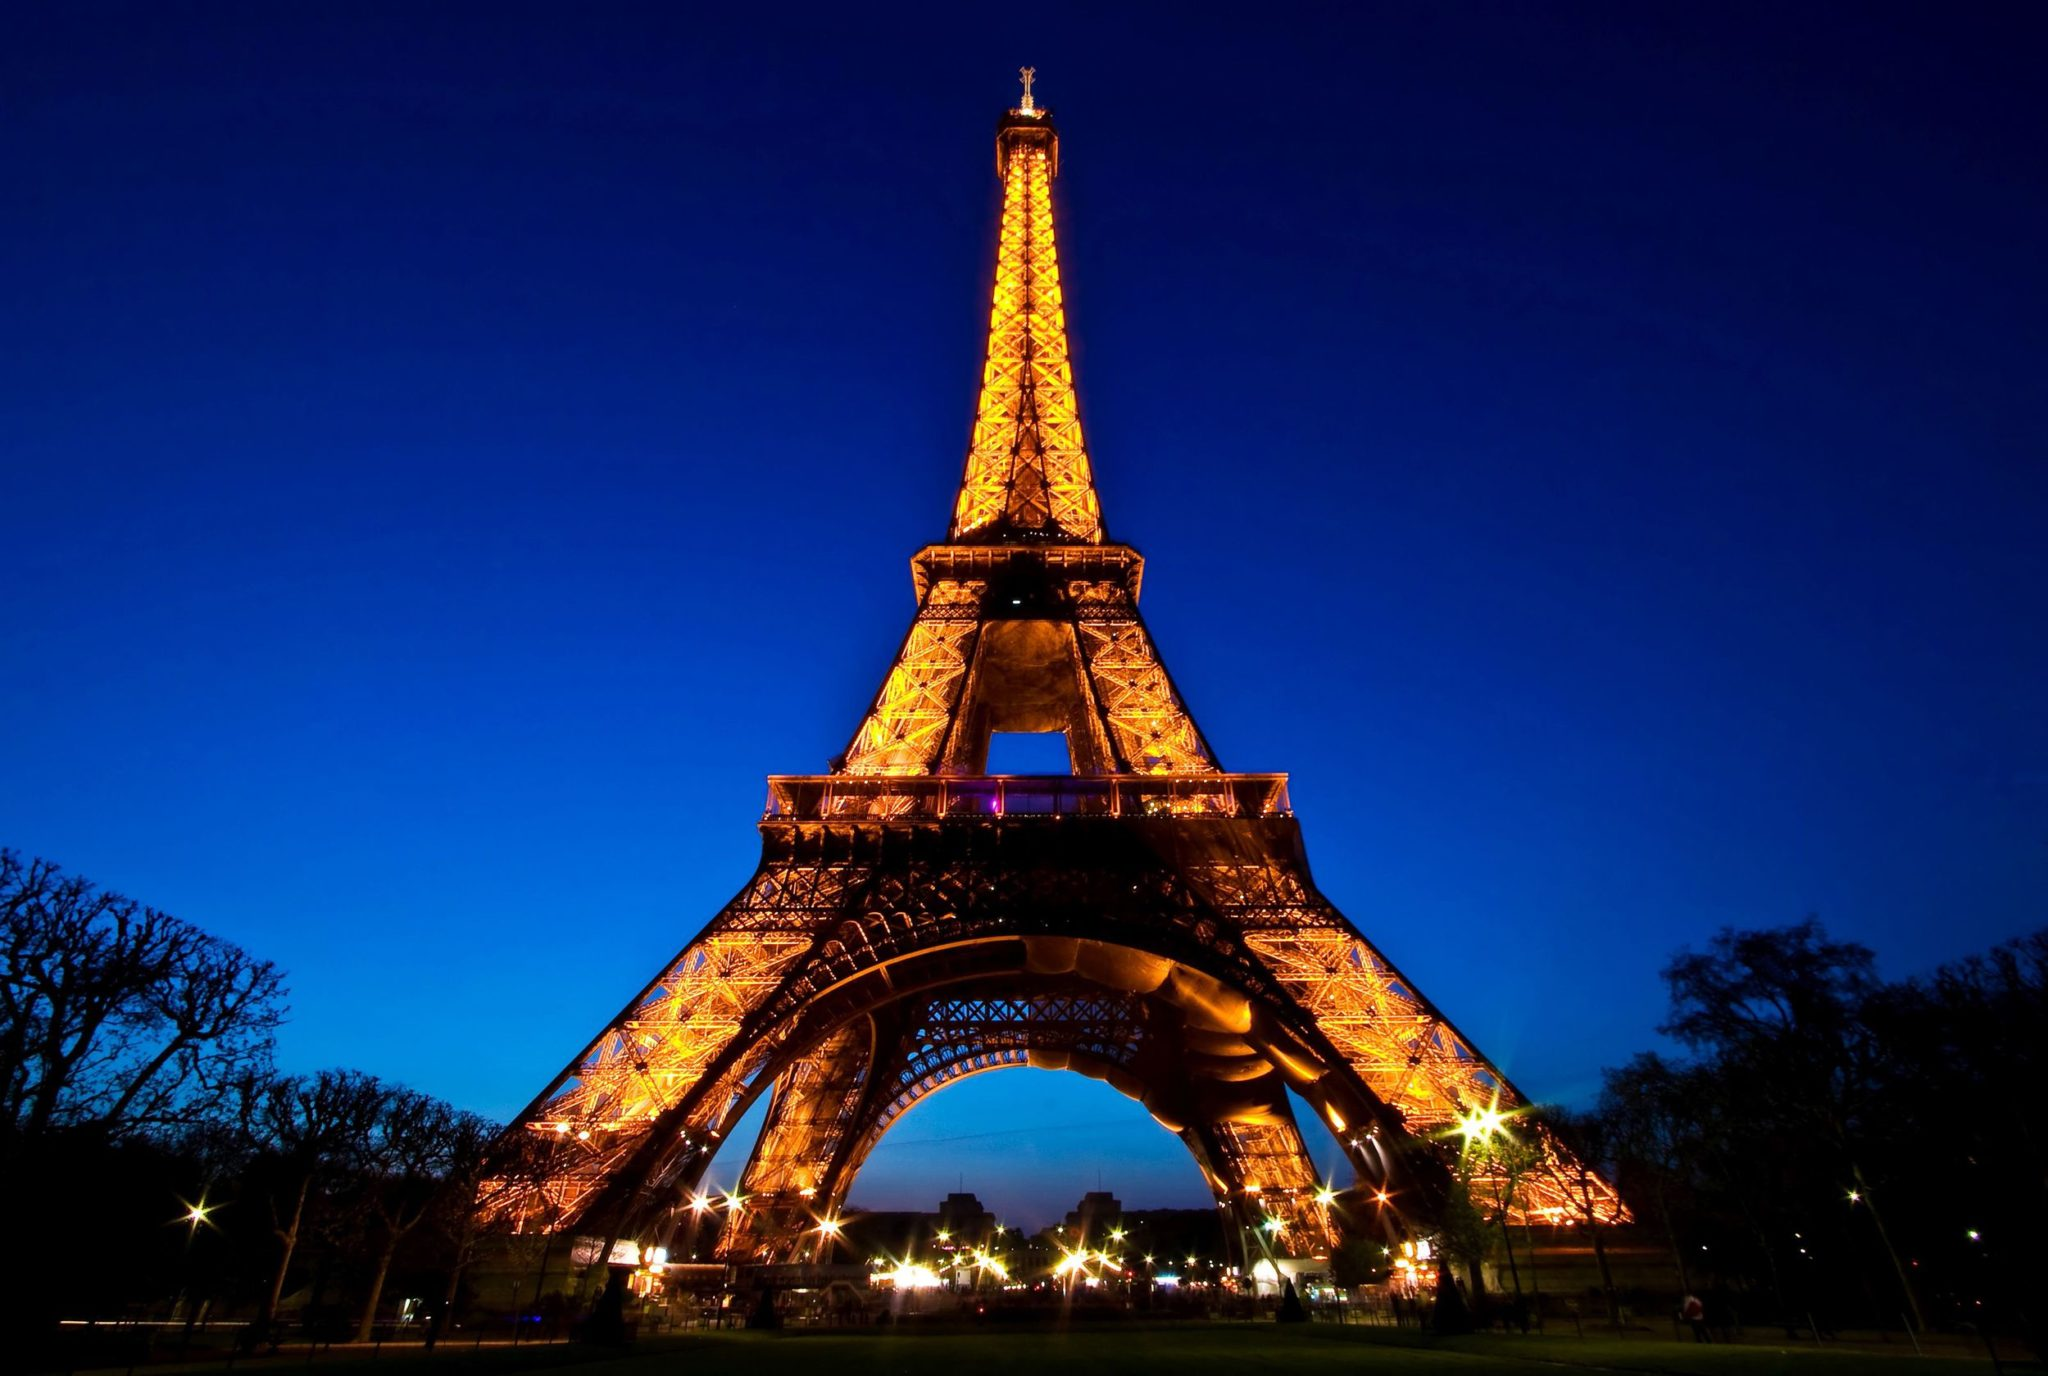 http://www.layoverguide.com/wp-content/uploads/2012/05/Eiffel-Tower-in-Paris-France.jpg